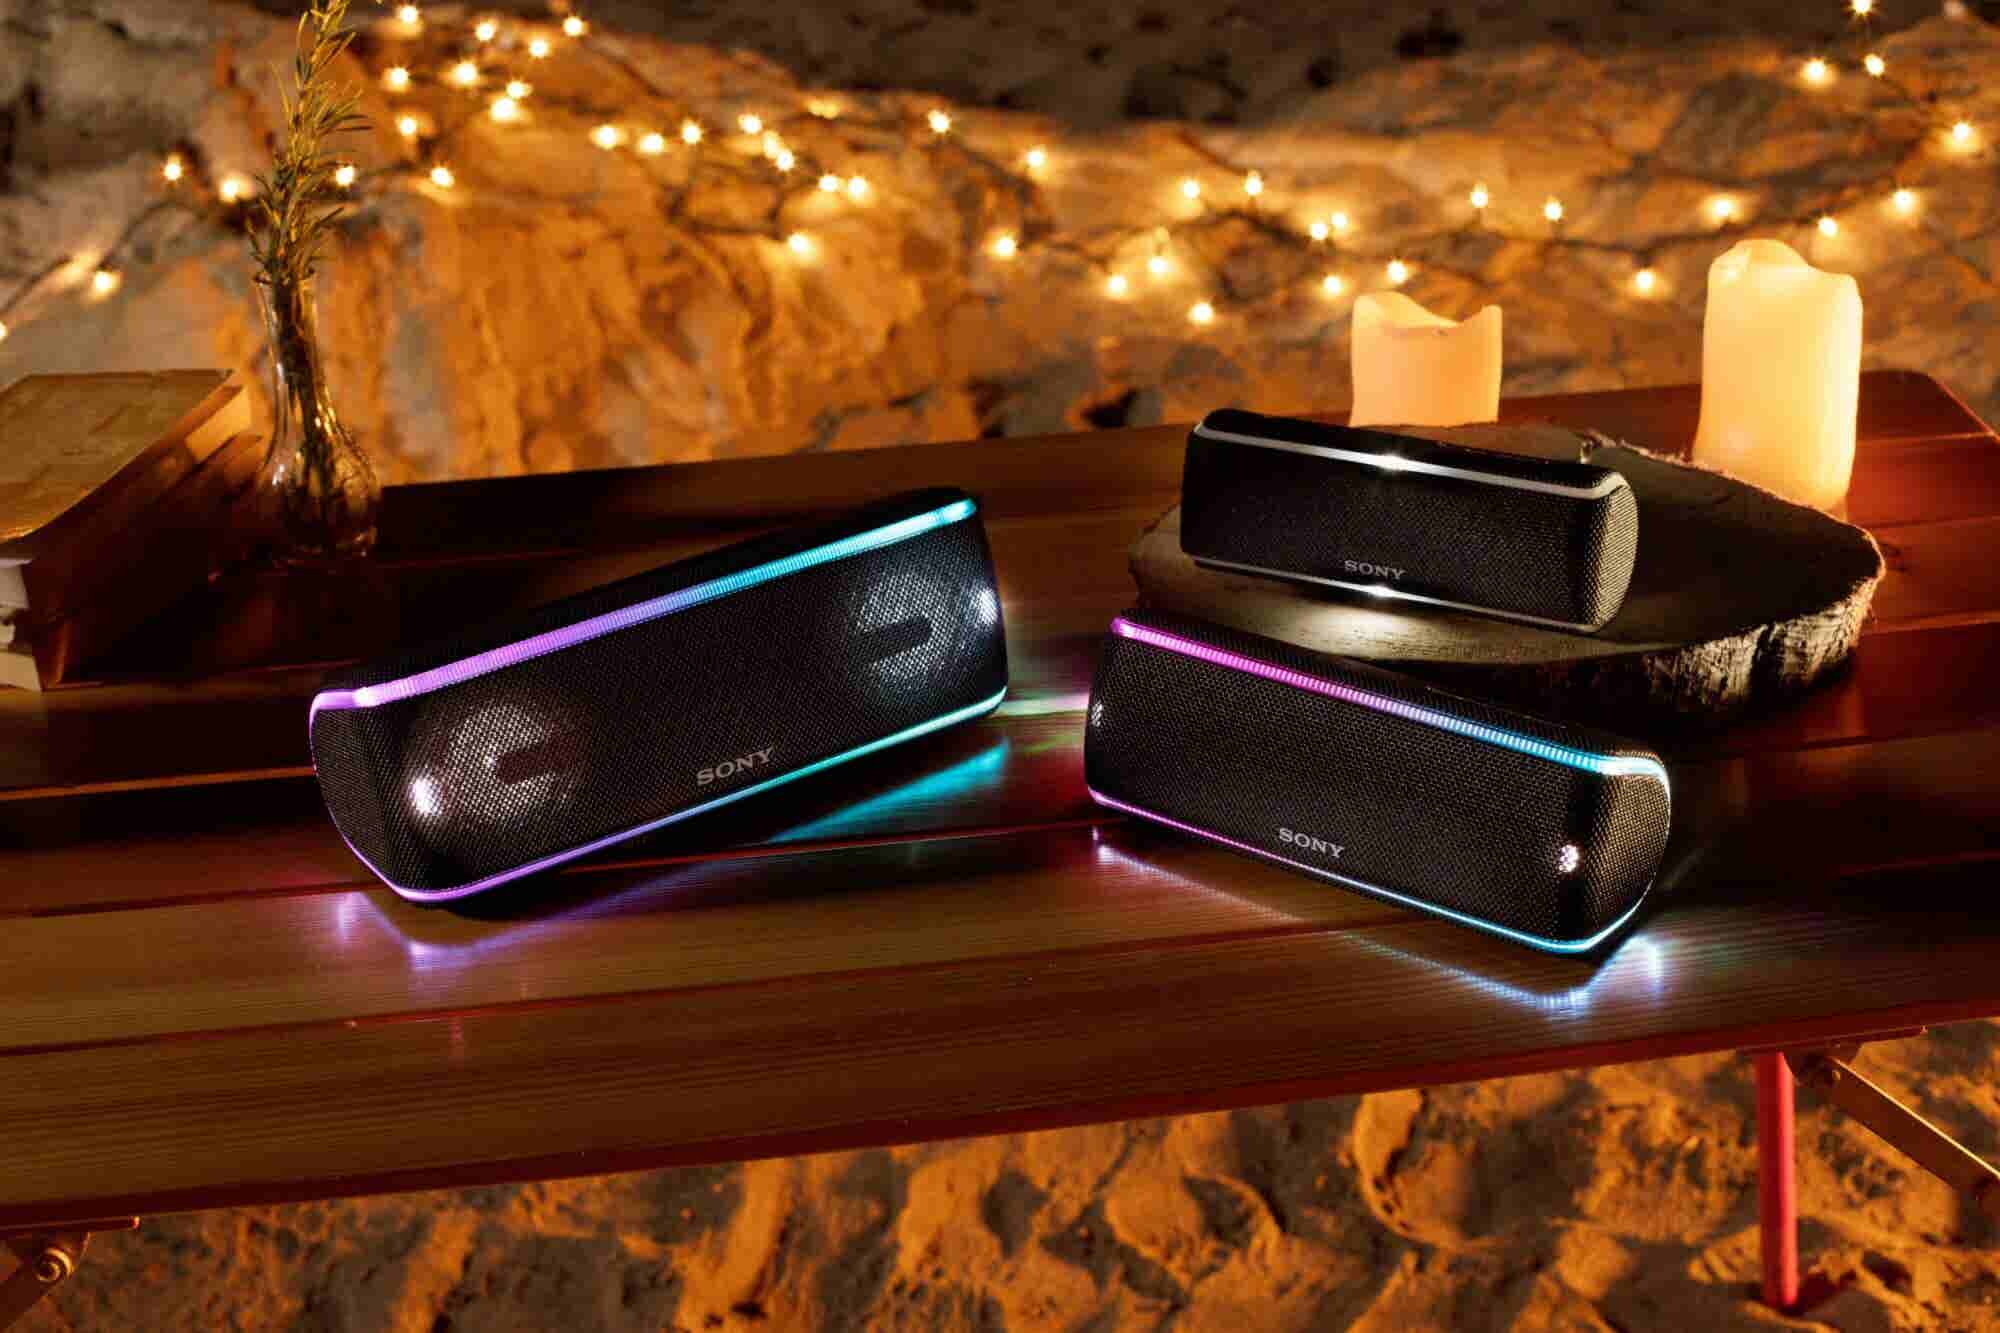 All About That Bass: Sony EXTRA BASS Wireless Speakers